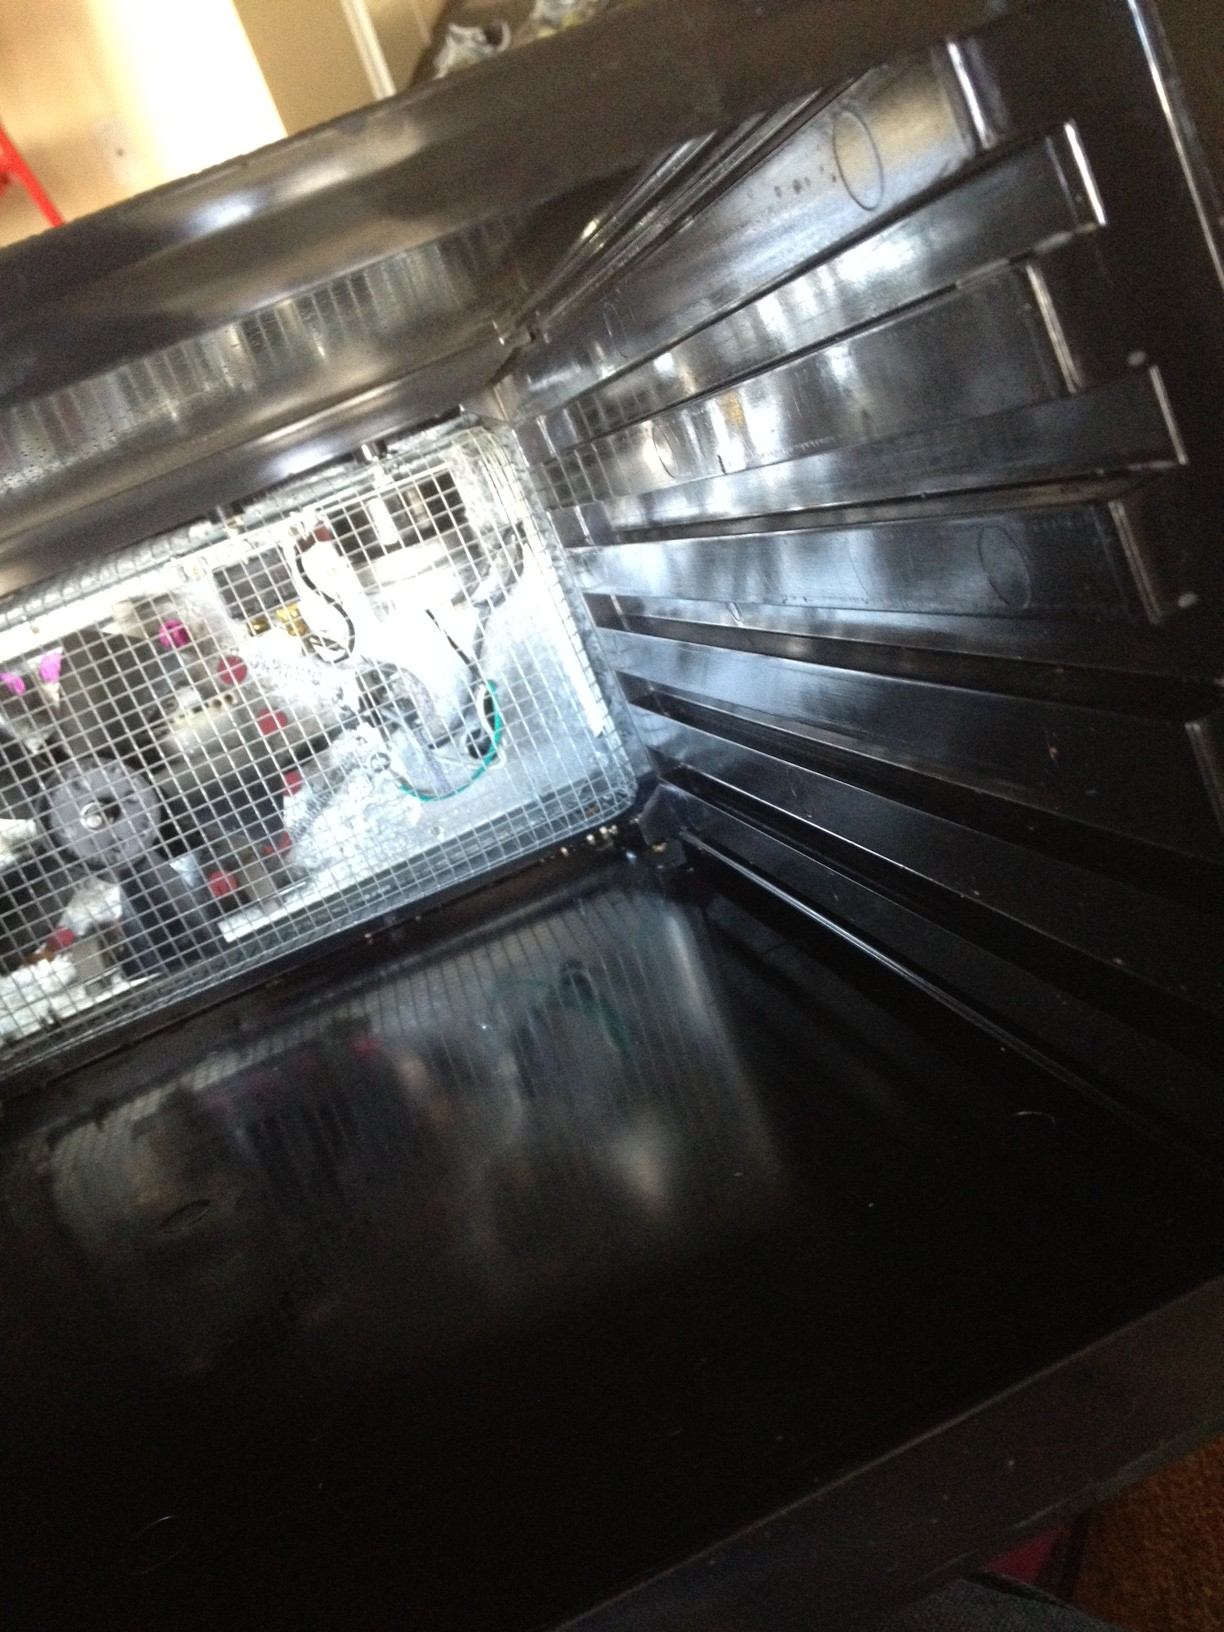 Step 1: Turn off and unplug your dehydrator. Remove the door and all of the  trays. The timer's the guy on the right, in the cage.